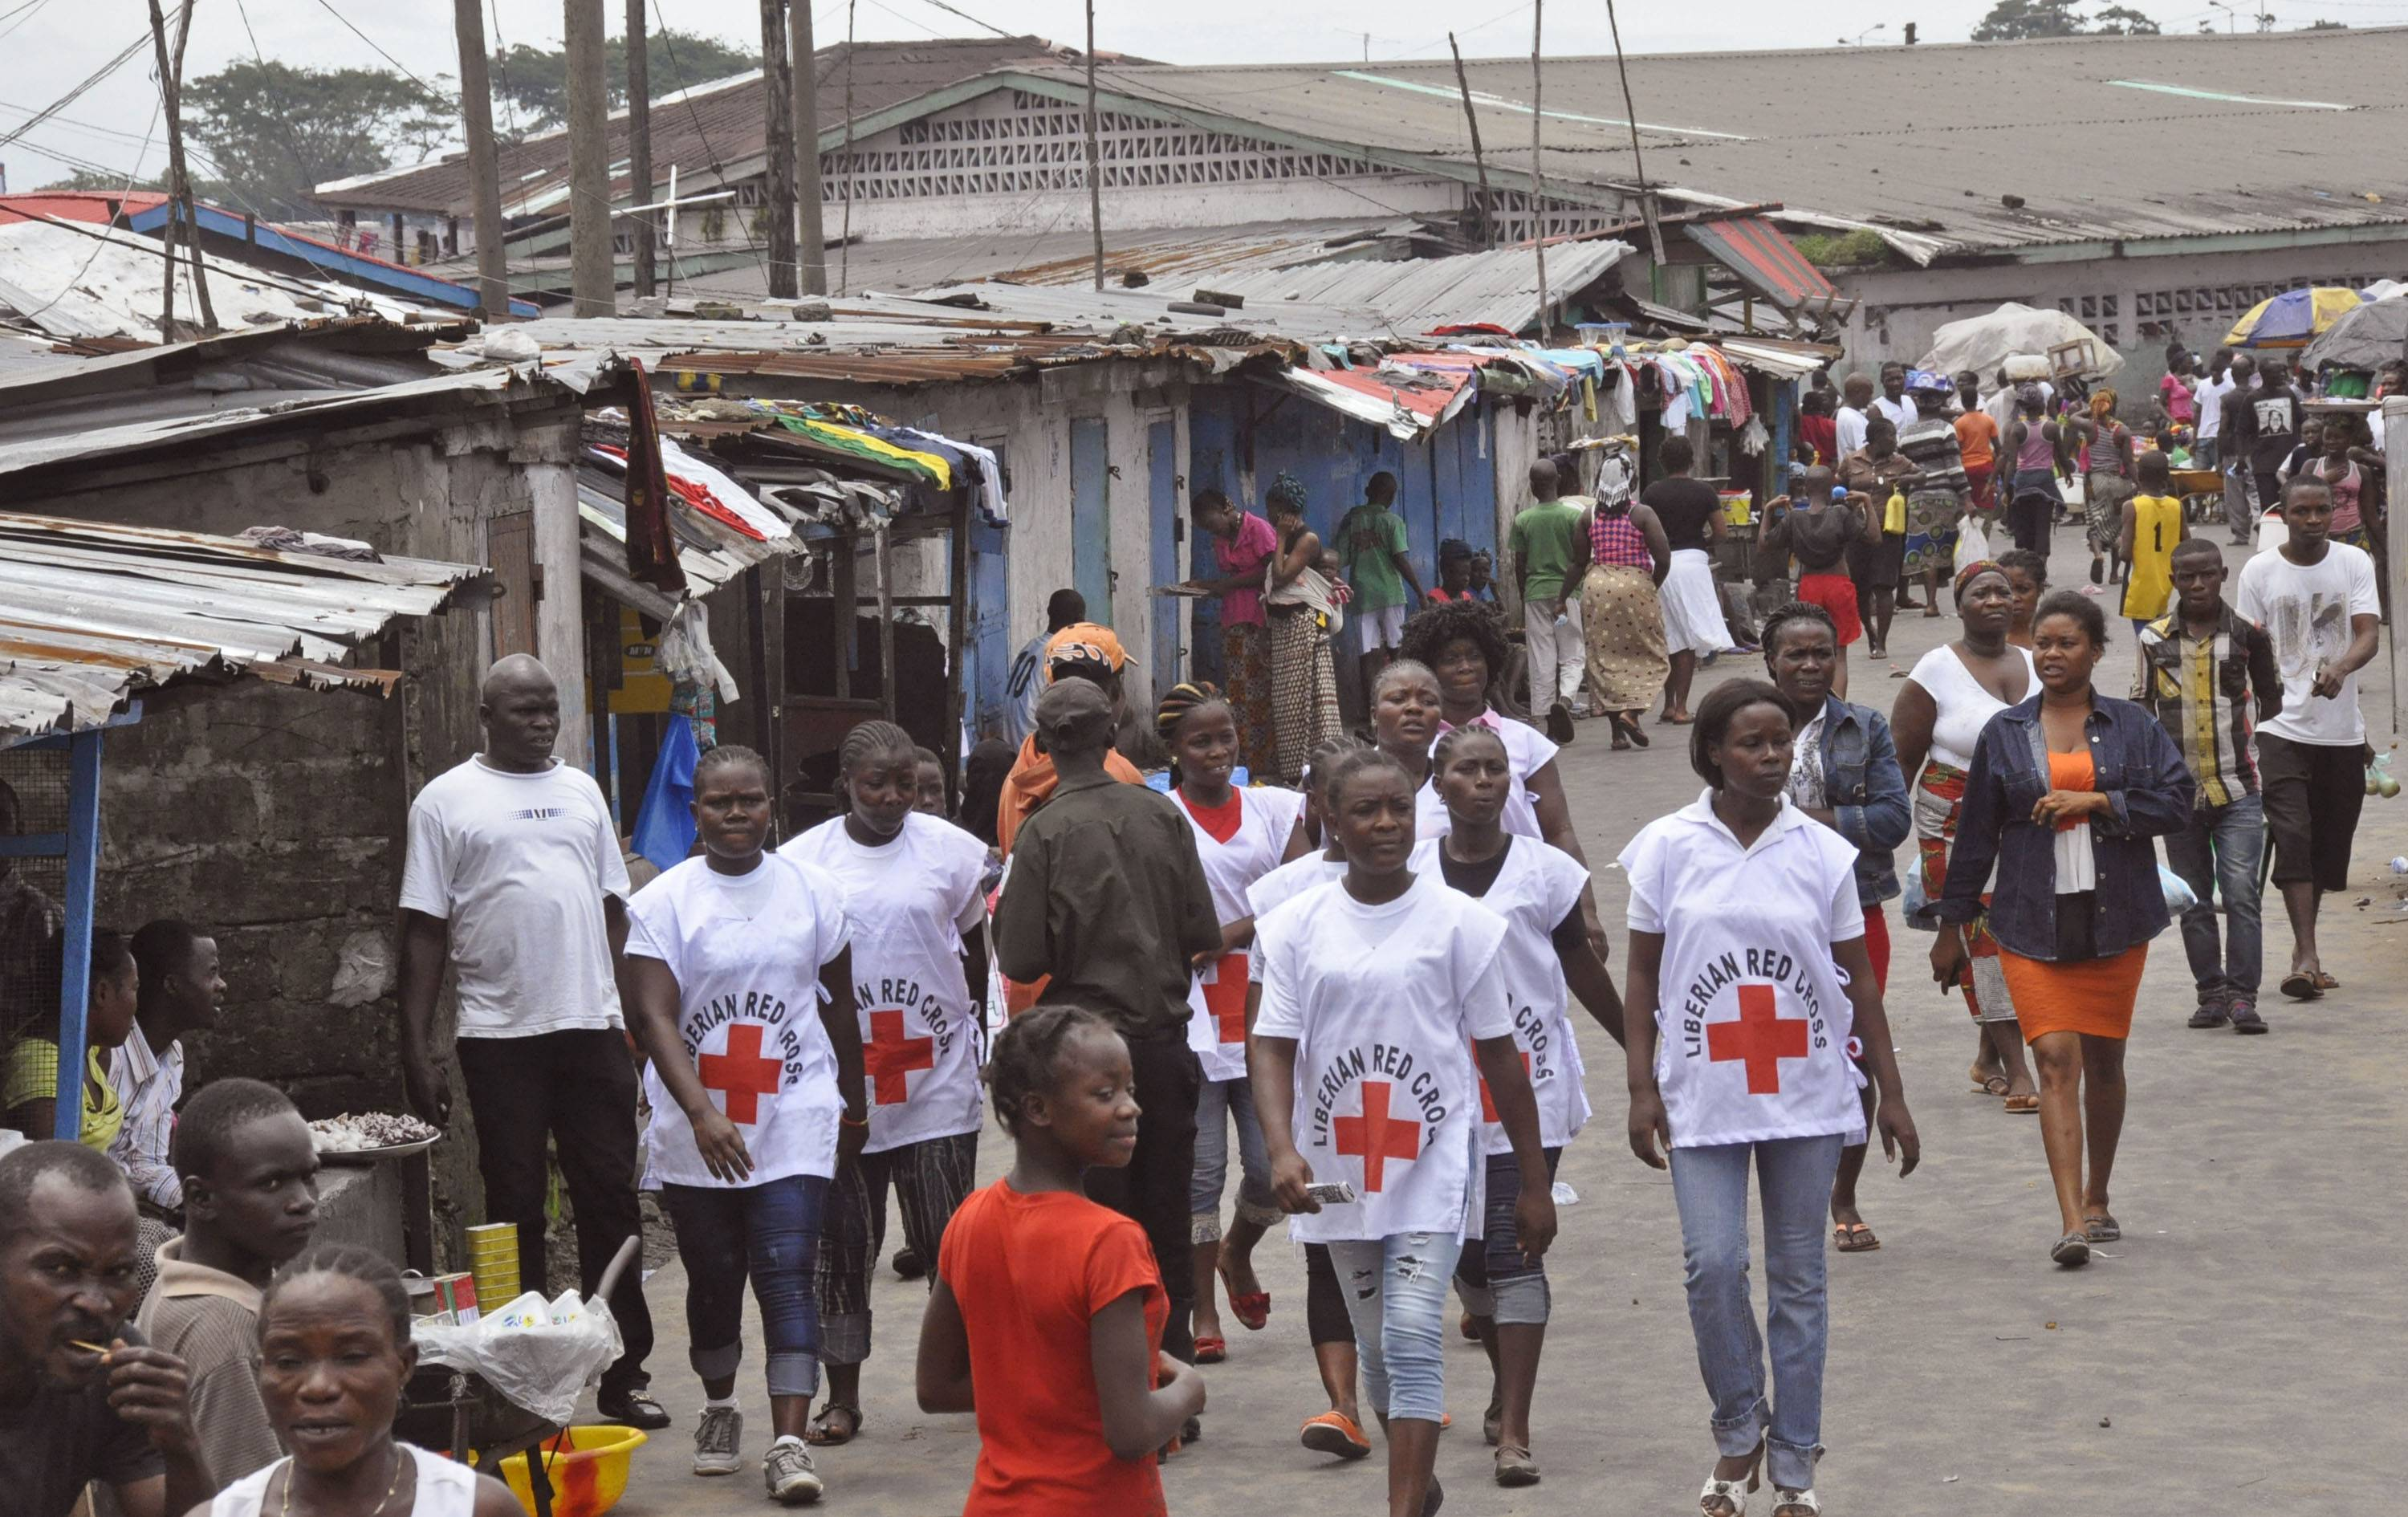 Red Cross workers walk through a section of West Point, an area that has been hit hard by the Ebola virus, with residents not allowed to leave as government forces clamp down on movement to prevent the spread of Ebola, in Monrovia, Liberia.